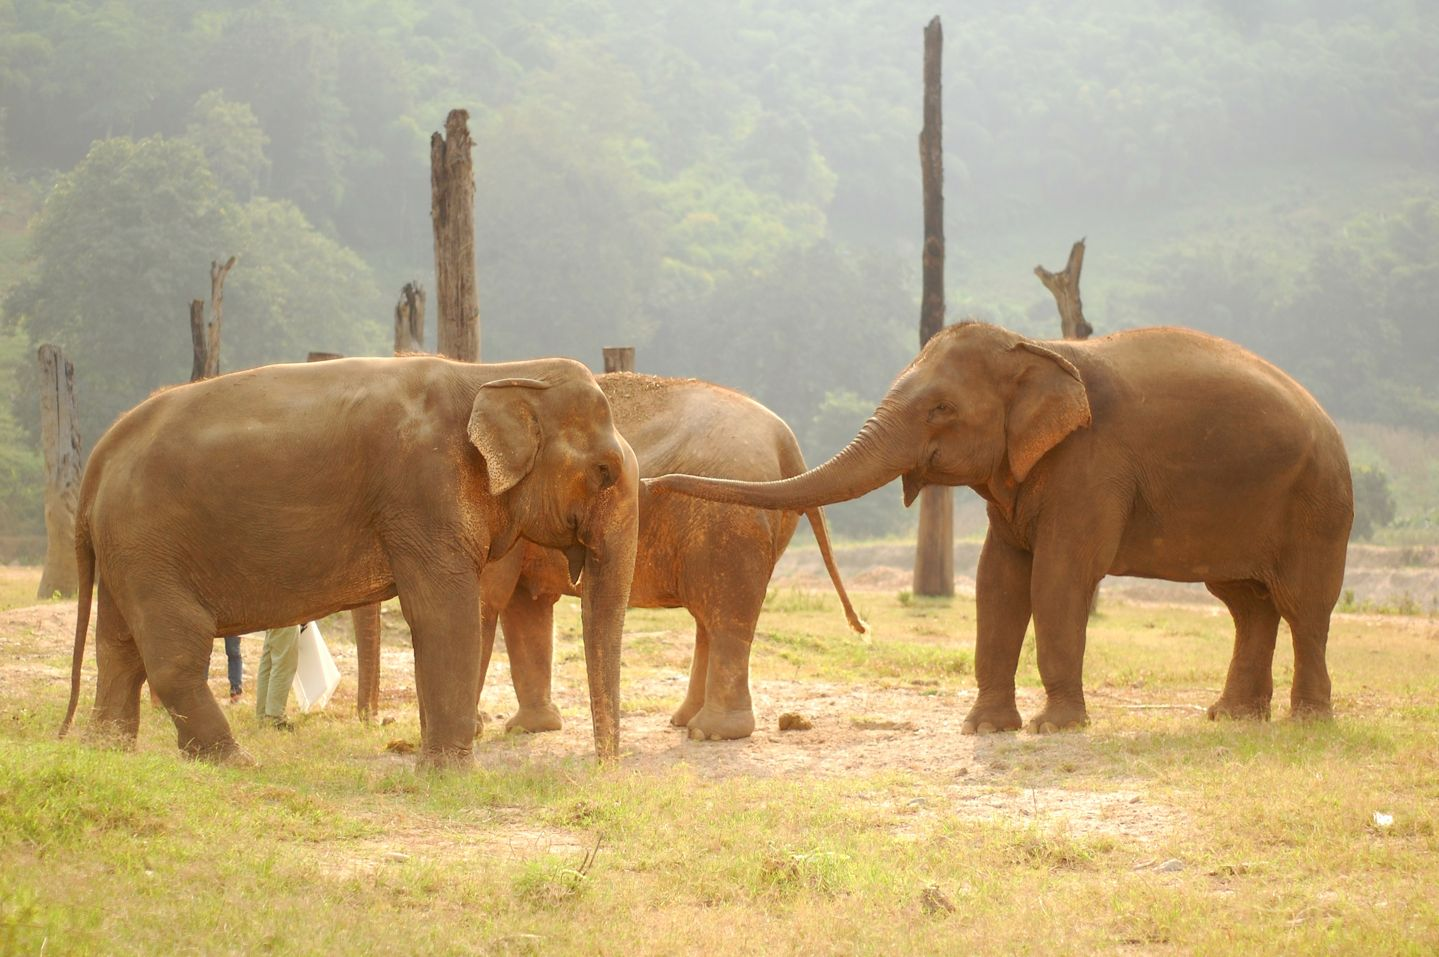 elephants-southeast-photo-essay